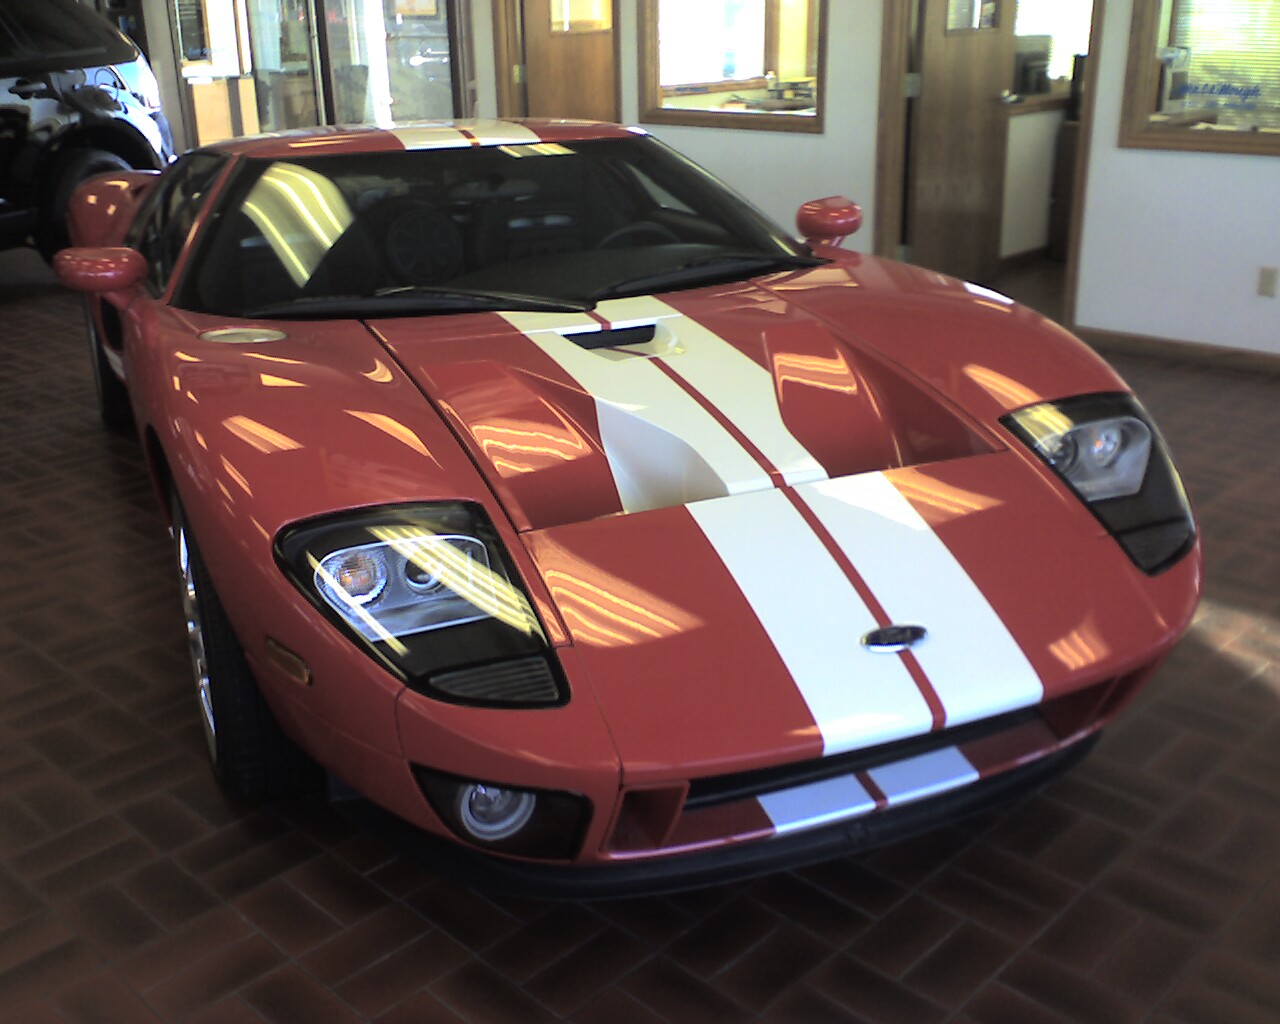 Source:  http://www.know4now.com/wp-content/uploads/2013/03/Ford_GT_At_McMullen_Ford.jpg